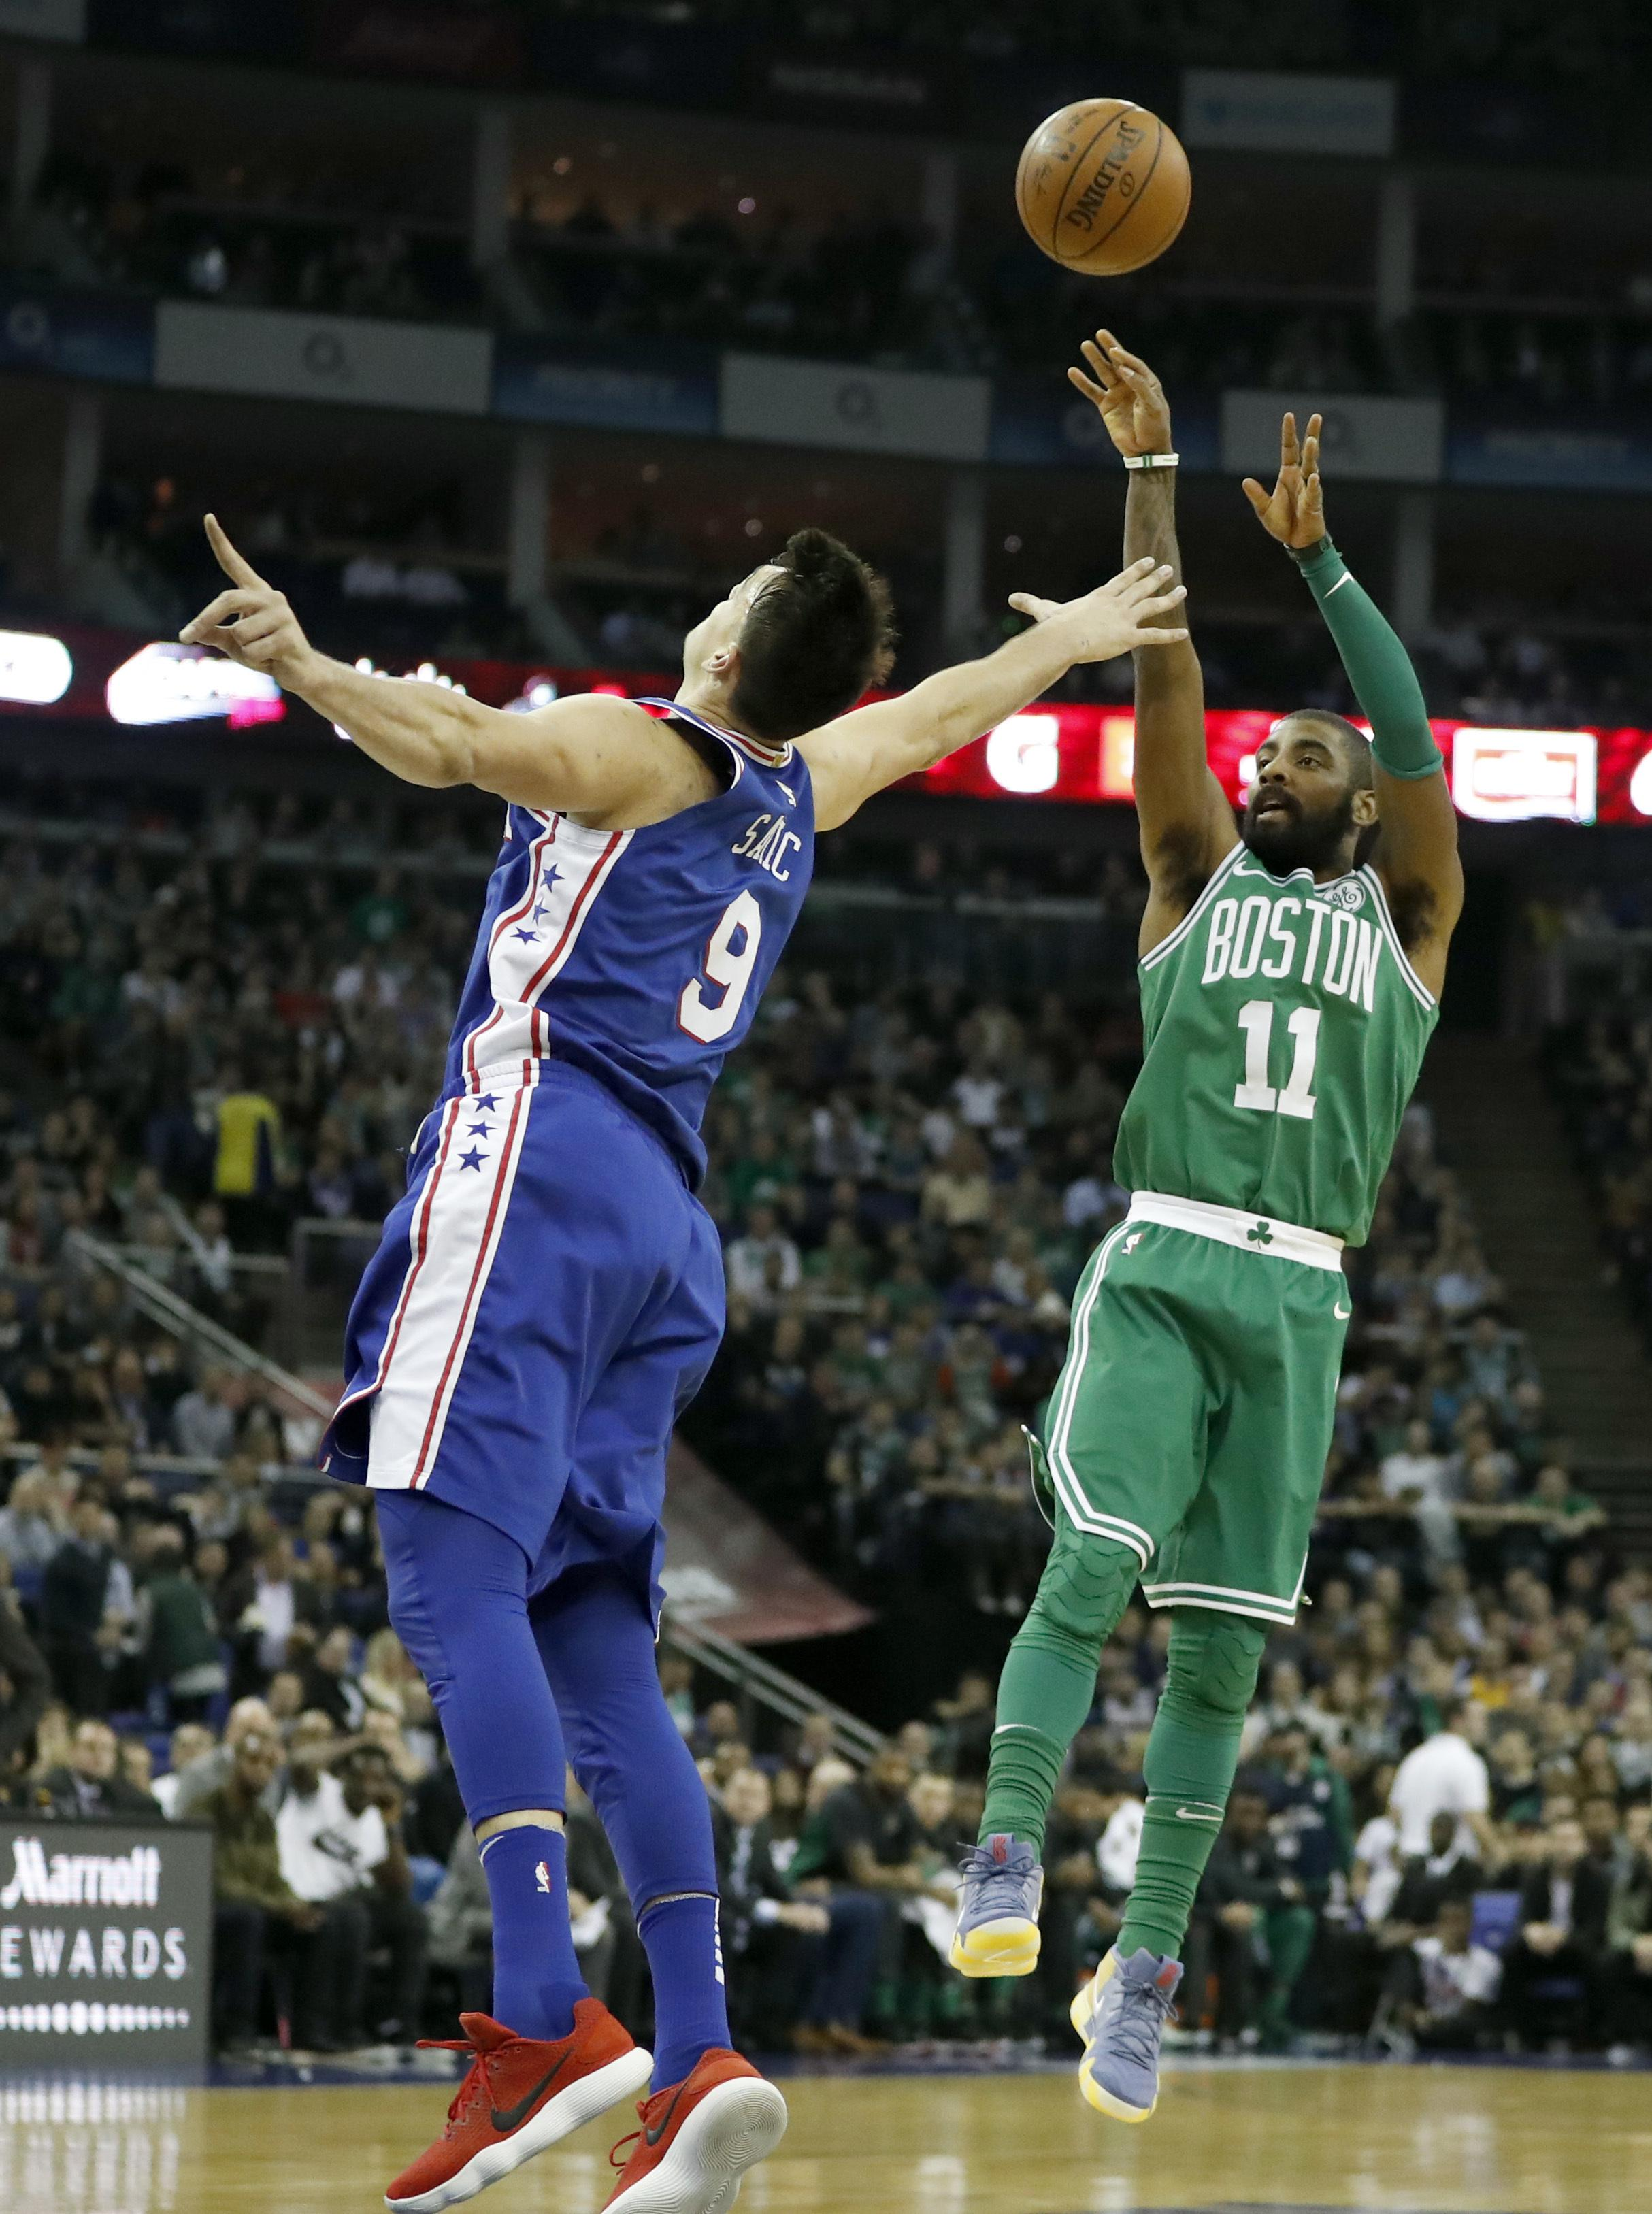 The Boston Celtics are expected to be stronger this season after star men Kyrie Irving, right, and Gordon Hayward returned from injury